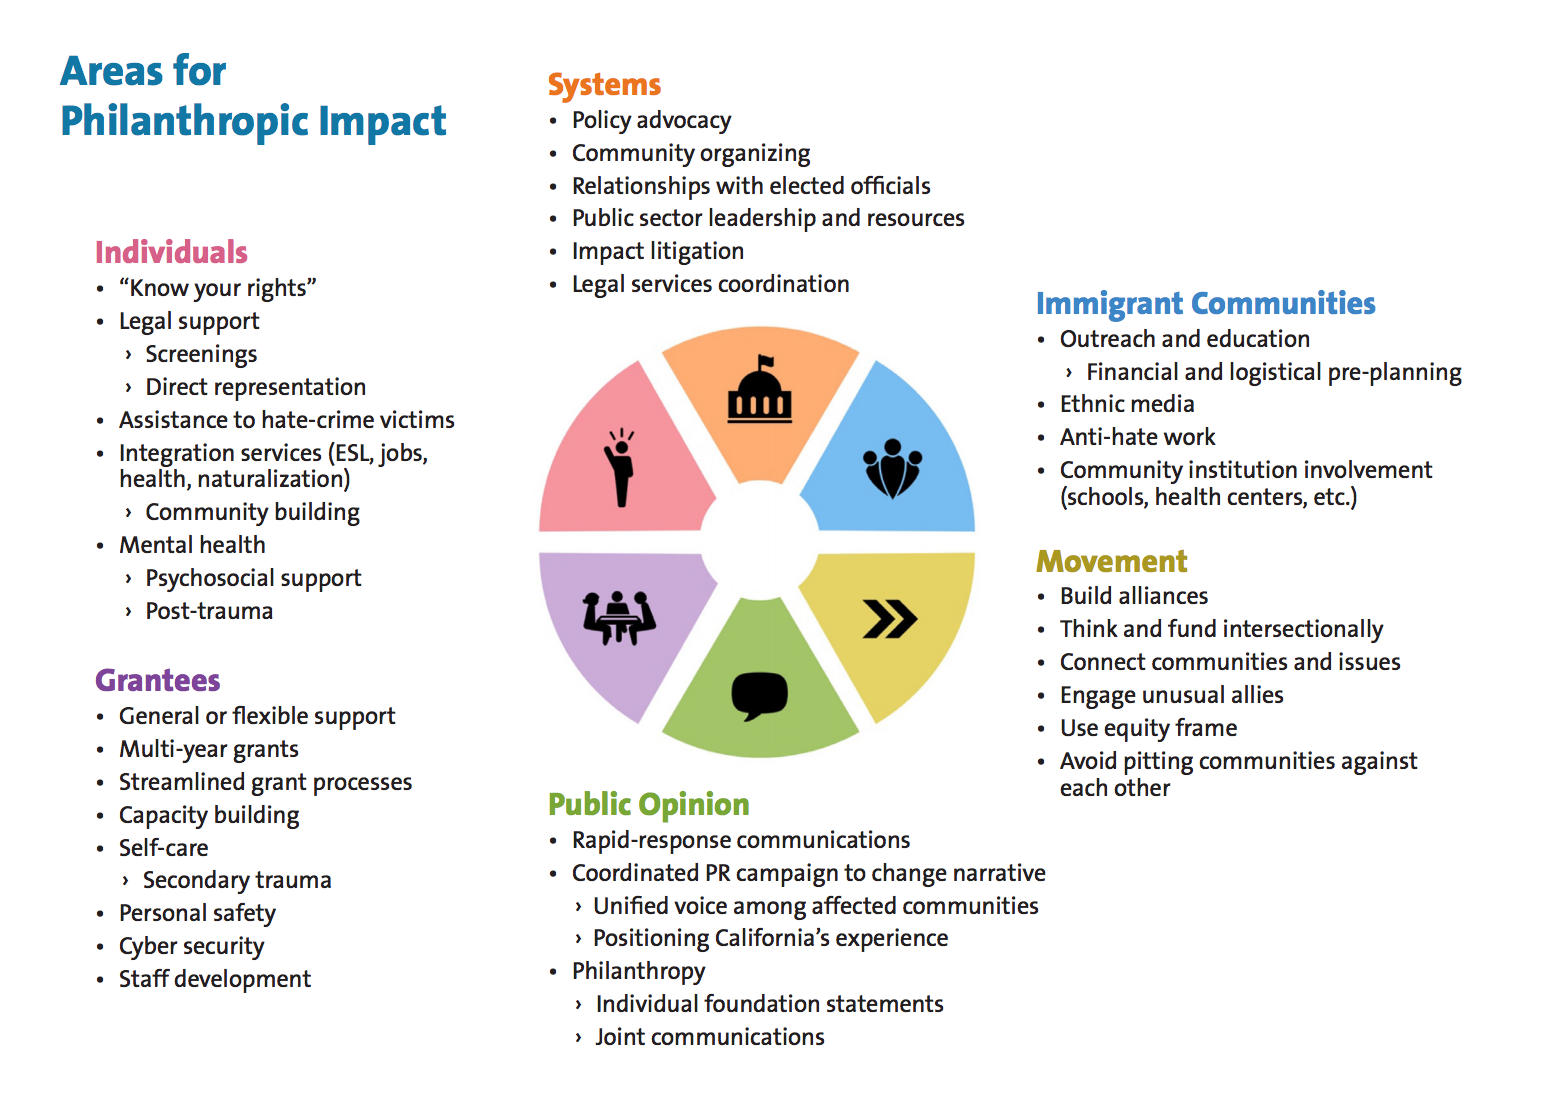 Areas For Philanthropic Impact